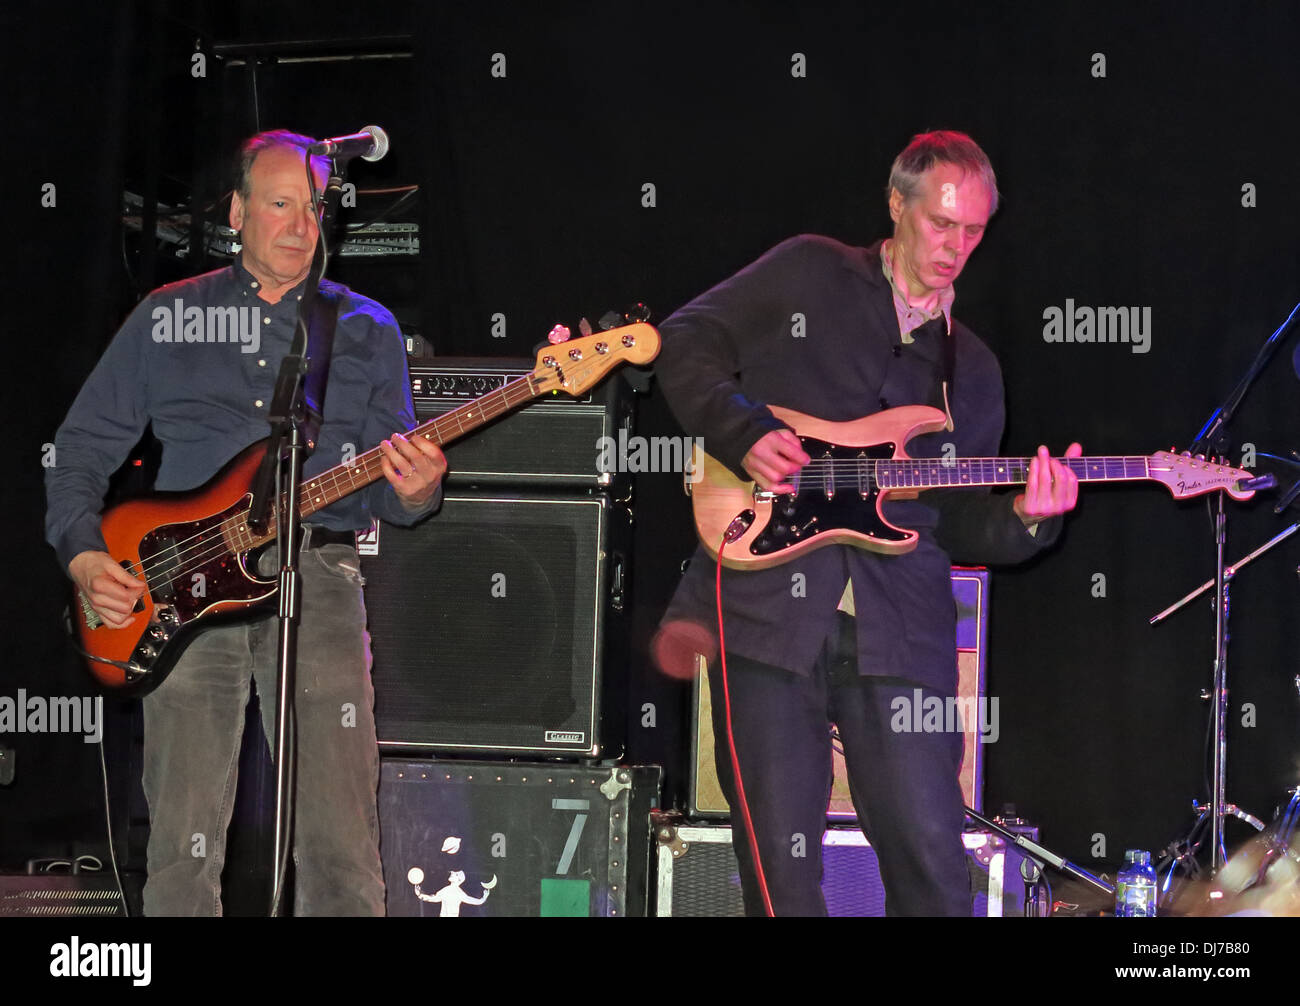 Fred Smith & Tom Verlaine of New York based Television, live at the Manchester Academy November 17th 2013 - Stock Image